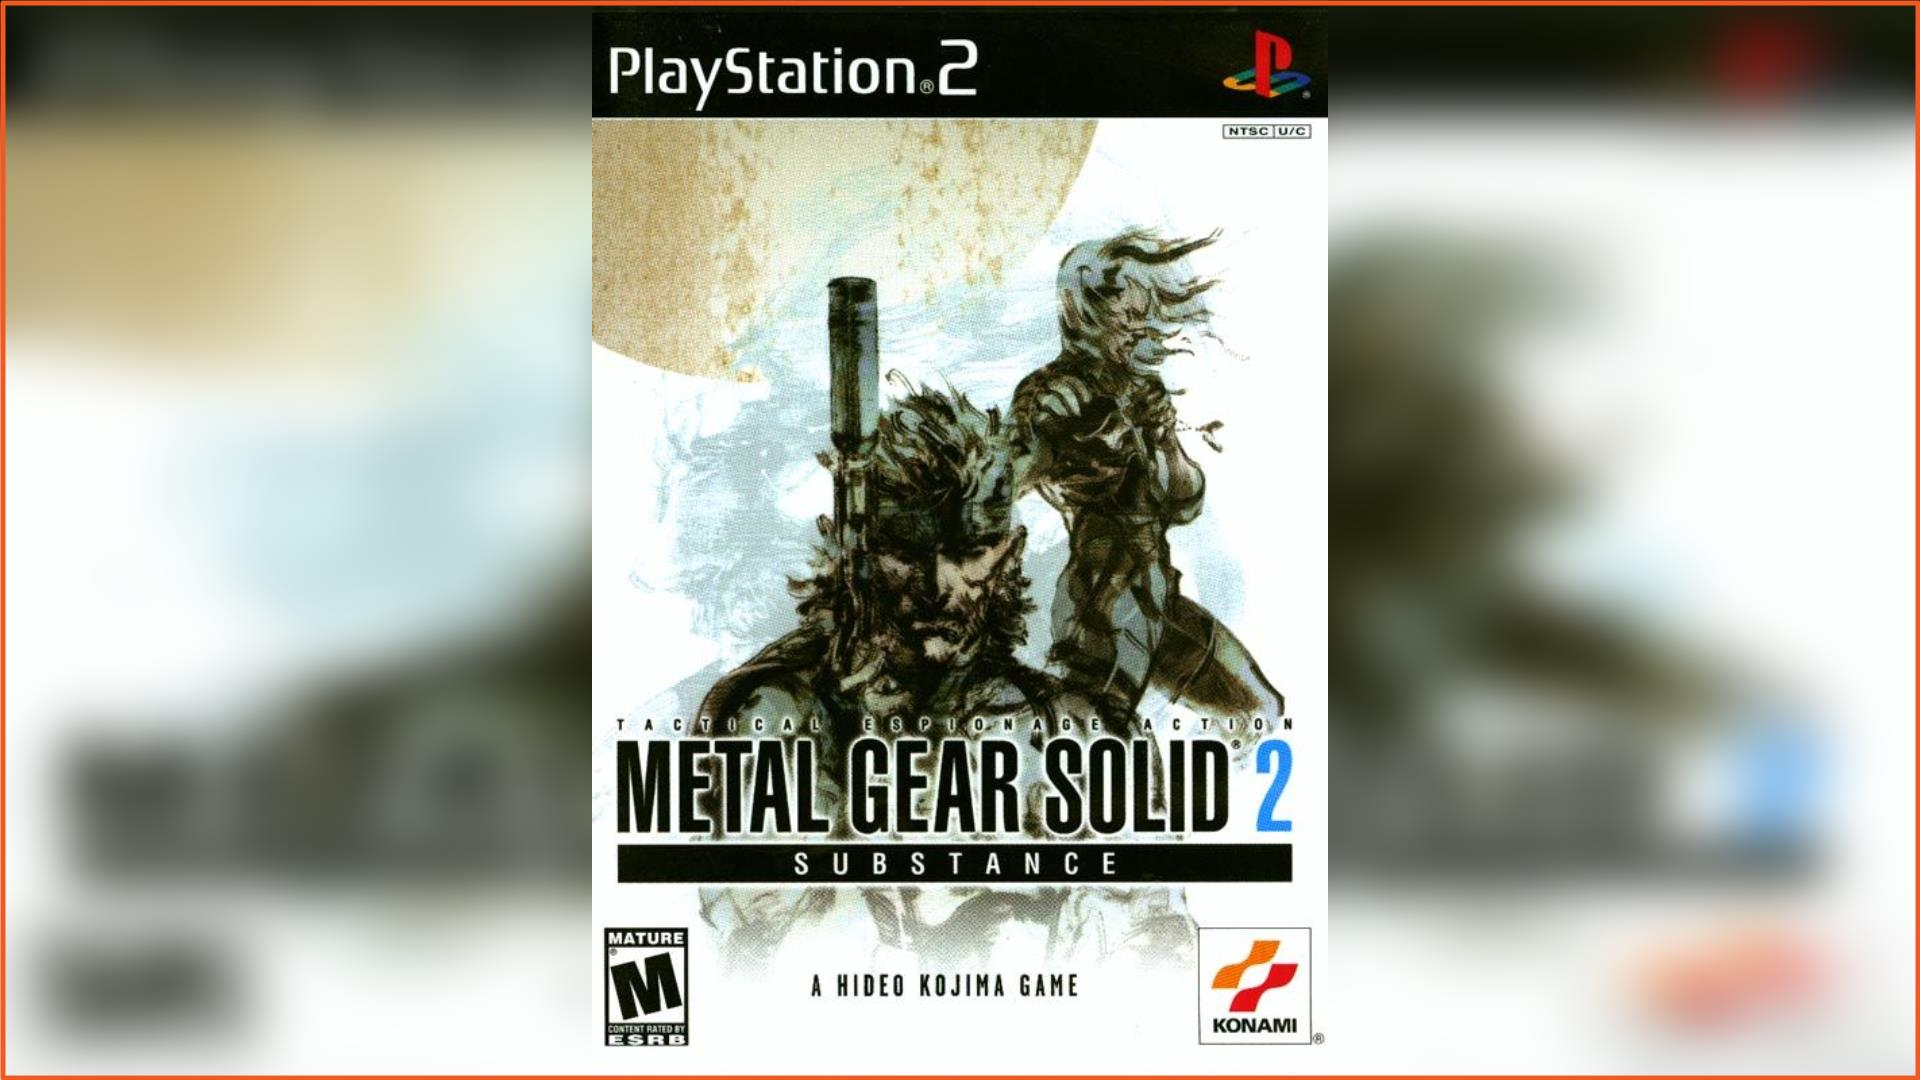 Metal Gear Solid 2 - Substance PS2 ISO Download